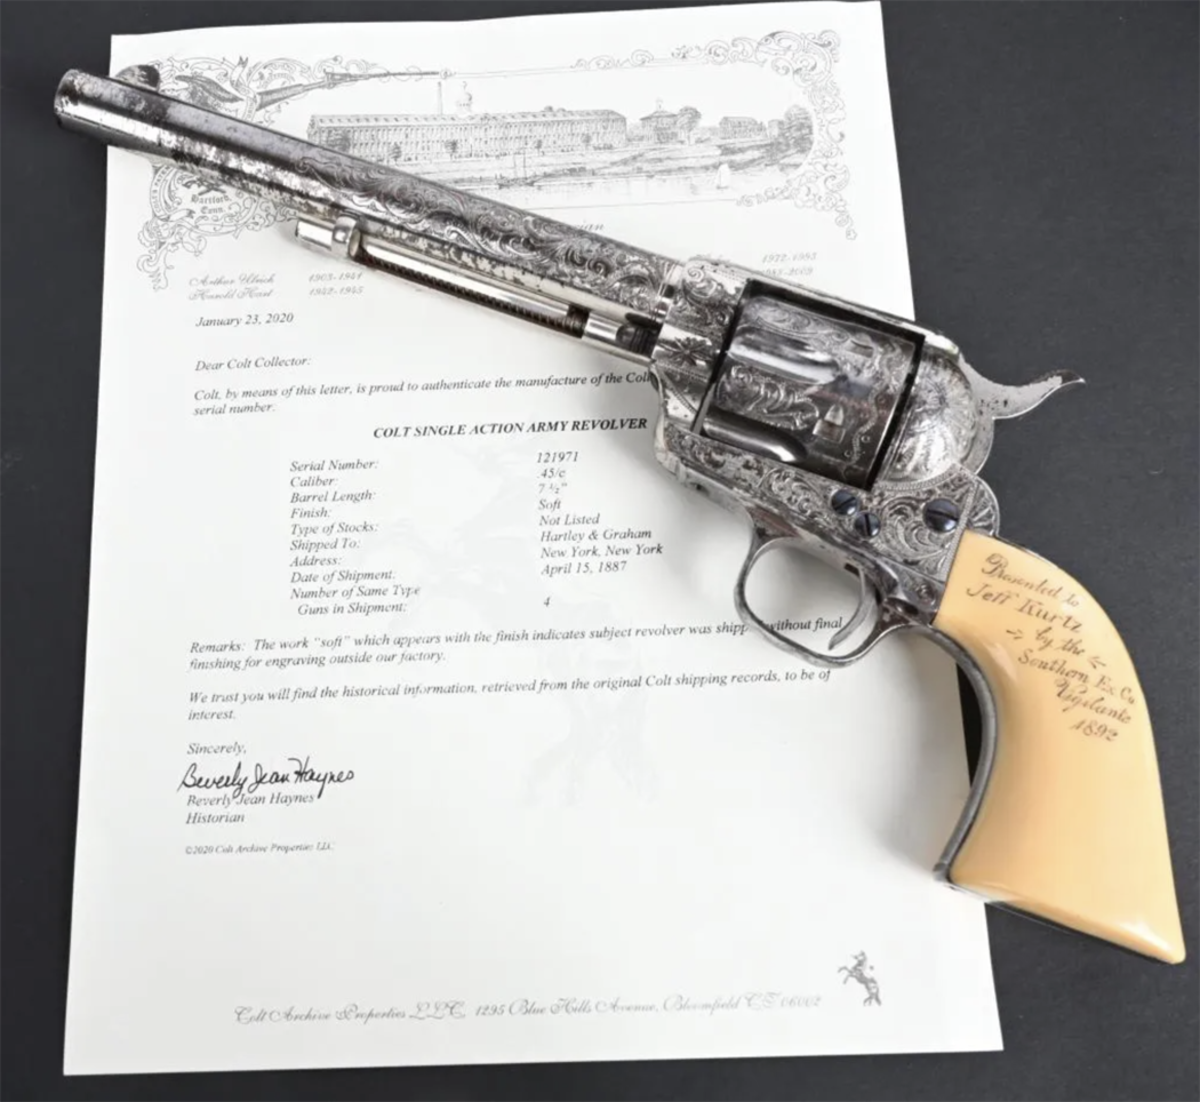 Colt single-action presentation Army Revolver, .45 caliber, one of four guns shipped on April 15, 1887 to Colt distributors Hartley & Graham of New York. Engraved by Cuno Helfricht or his shop to indicate presentation in 1892 to Jefferson D. Kurtz, former Confederate soldier and future sheriff of Volusia County, Florida, killed in line of duty in 1895.